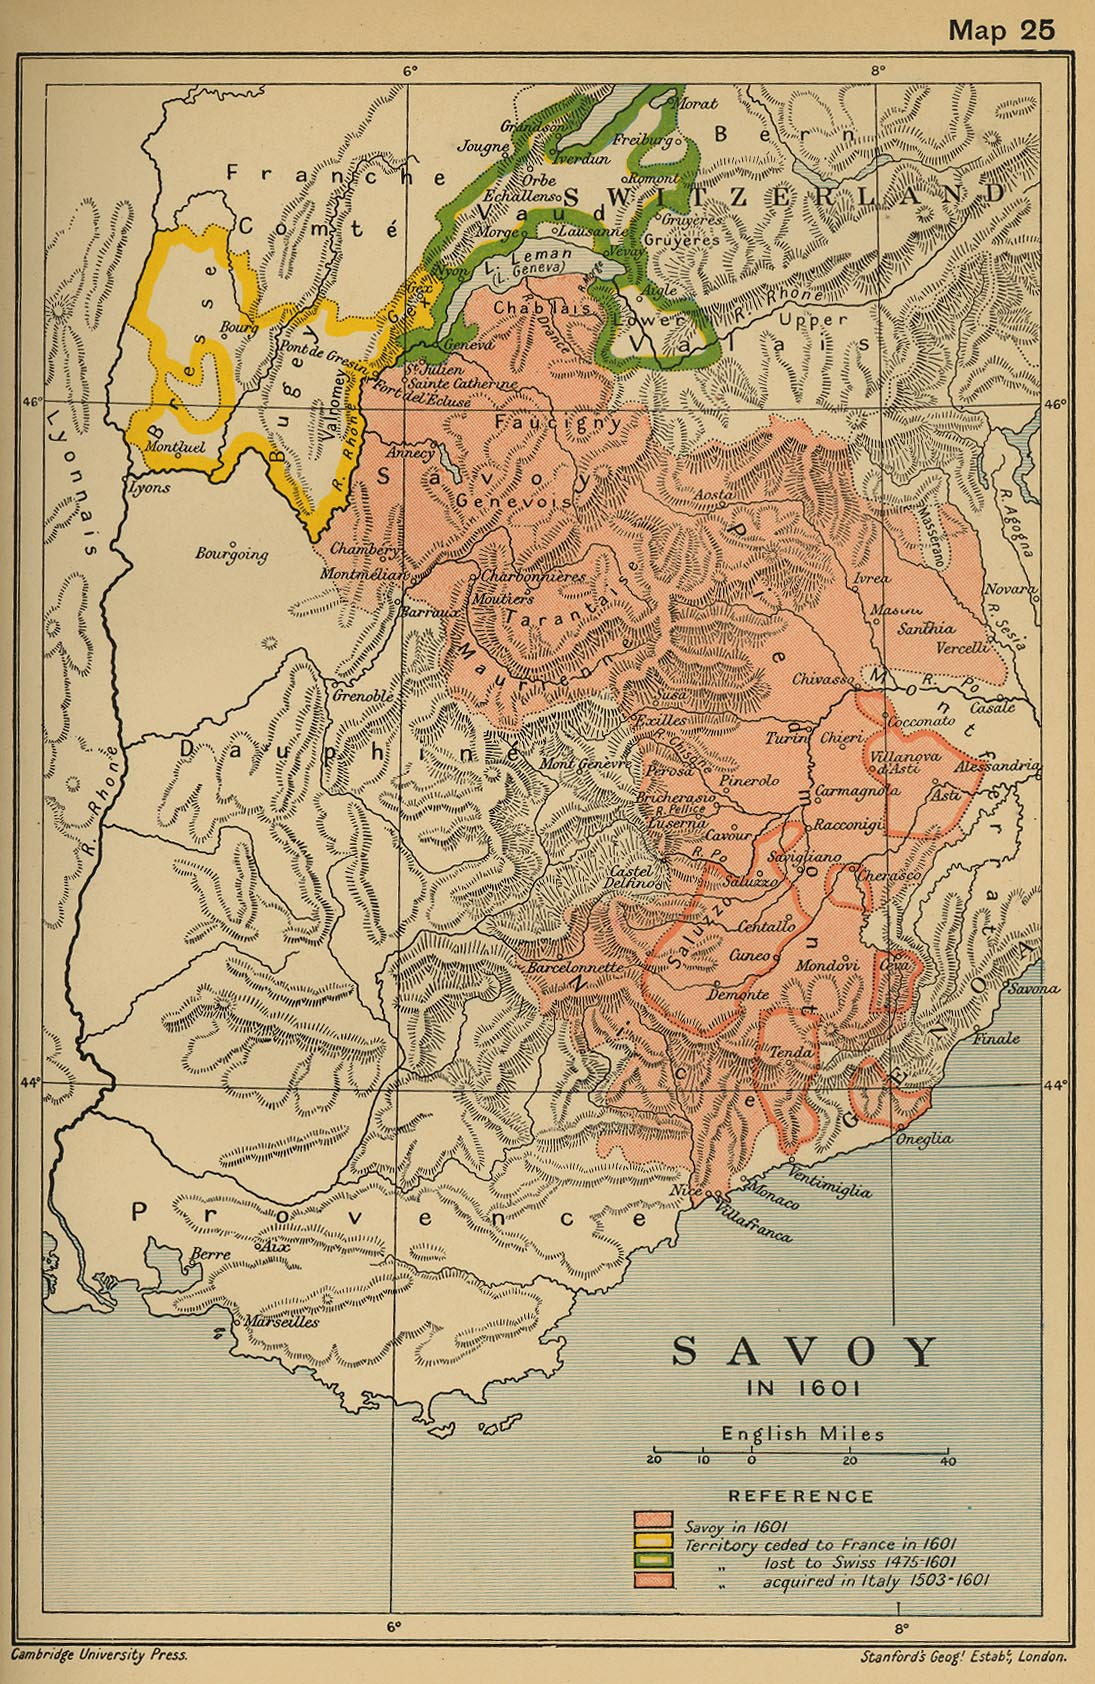 Map of Savoy 1601